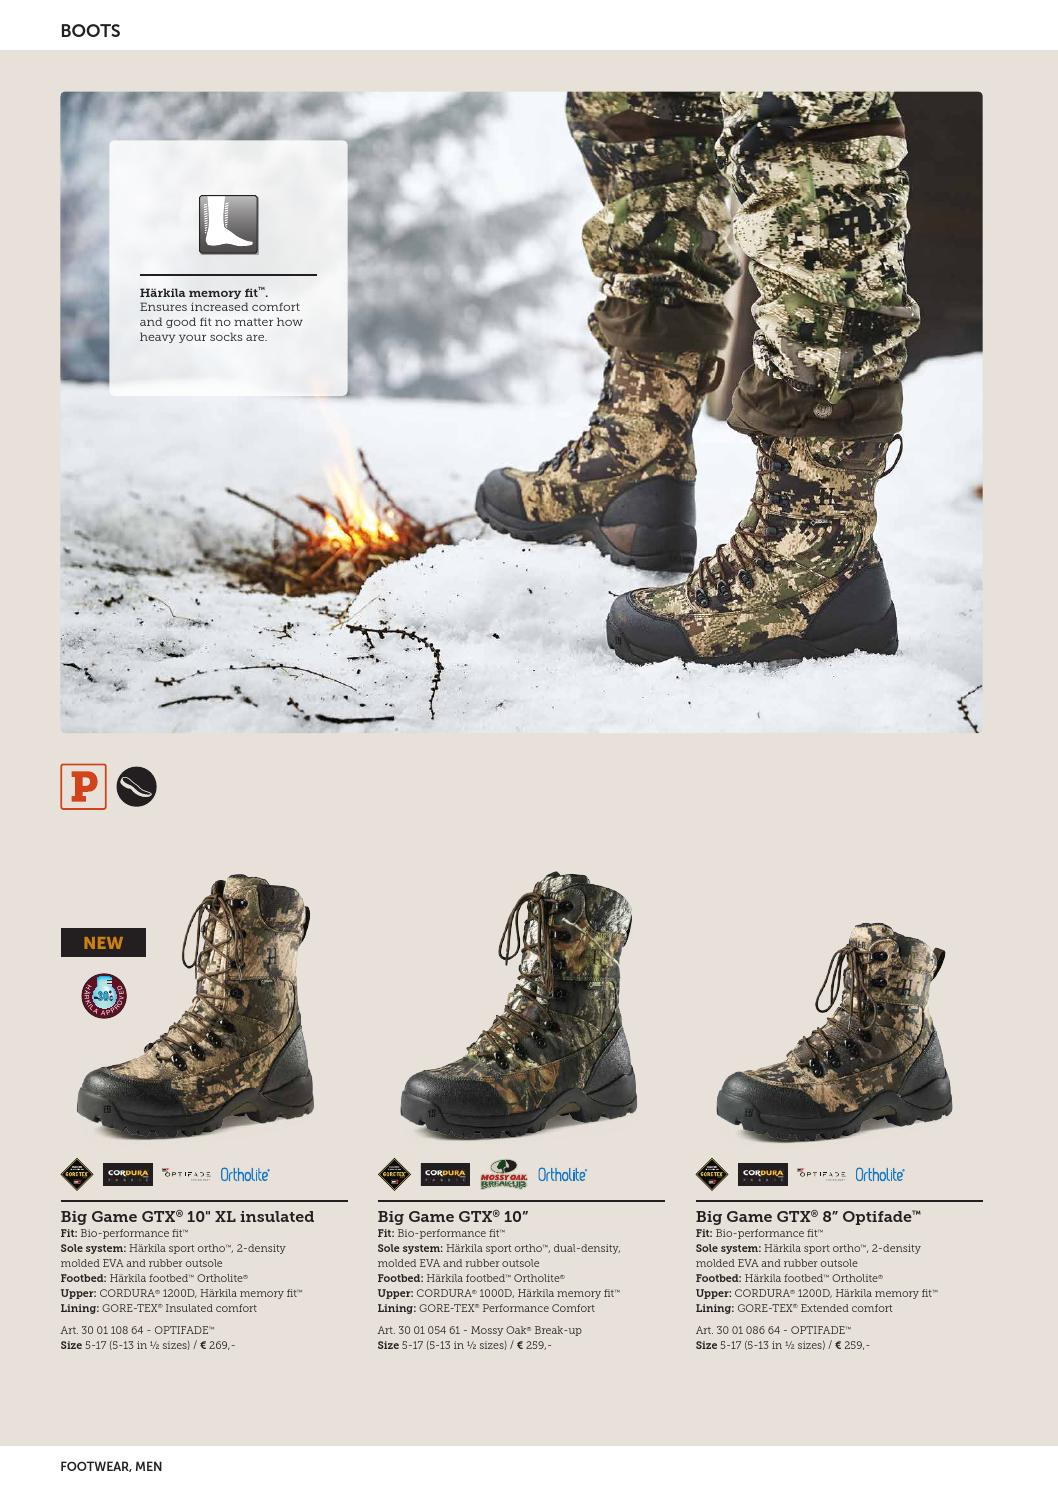 c0341f4e82c Exp härkila catalogue 2015 by Härkila - issuu